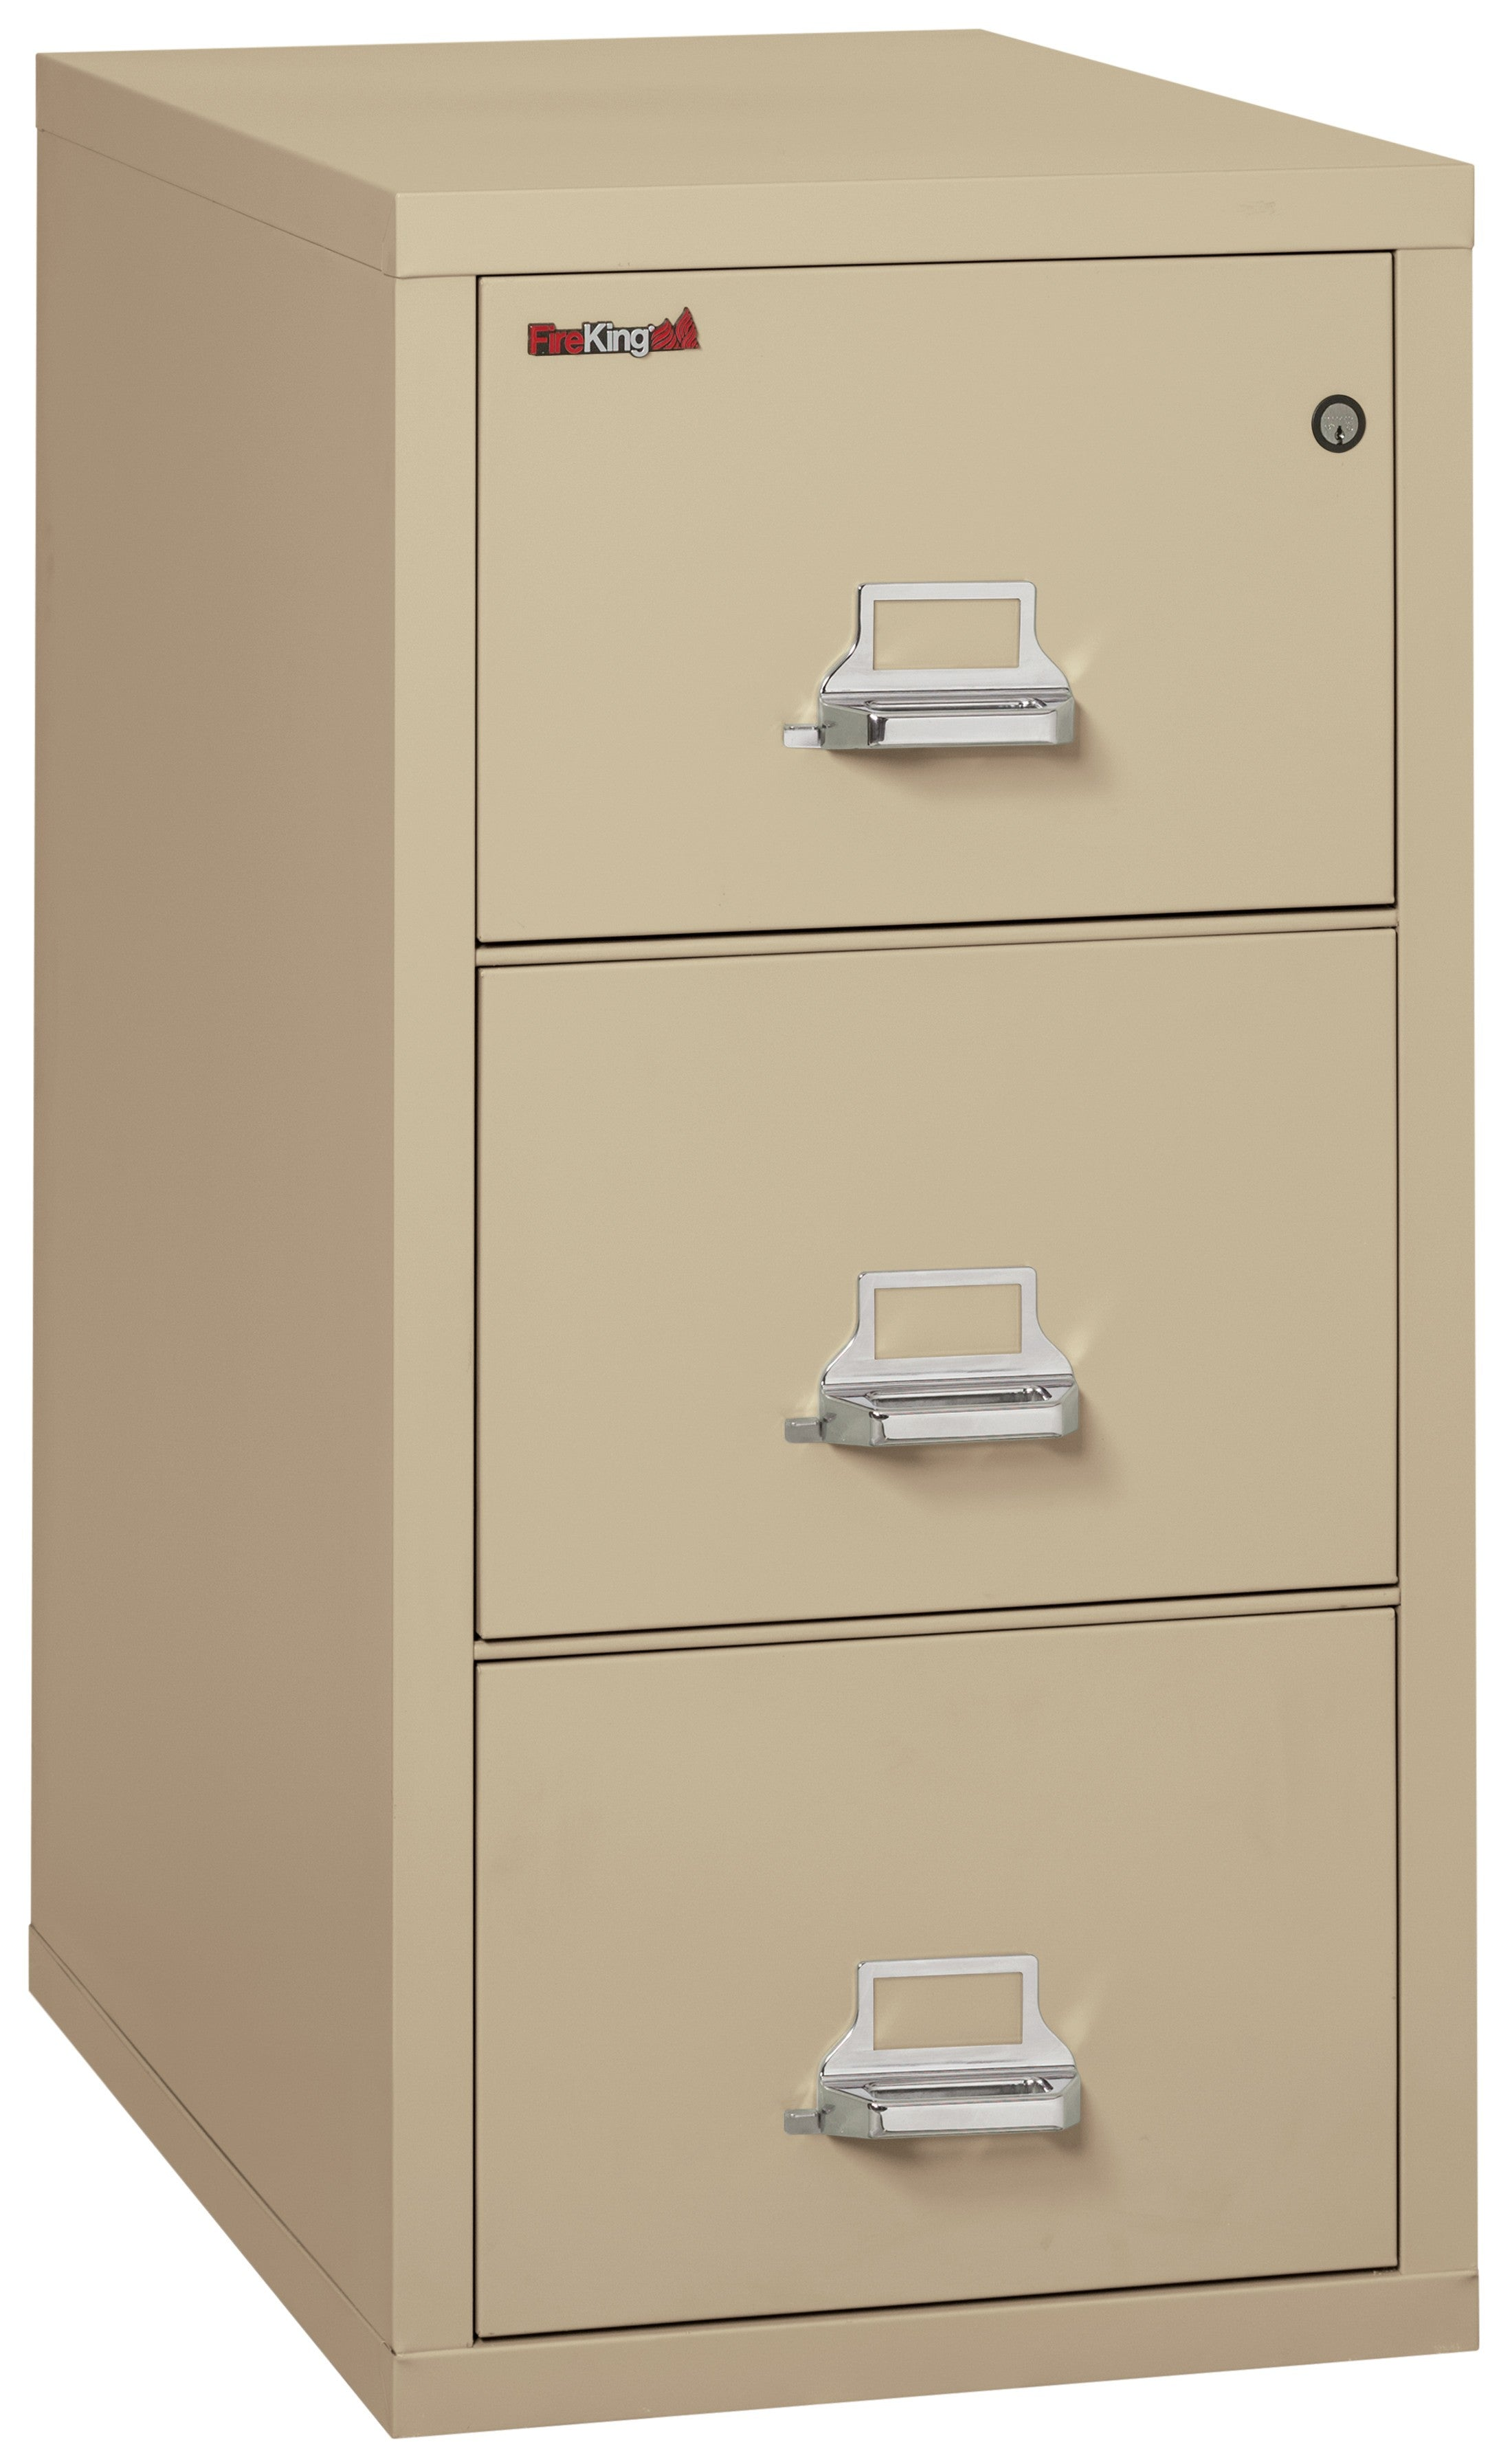 "Fireking 3 Drawer Letter 31"" D Classic Vertical File Cabinet"